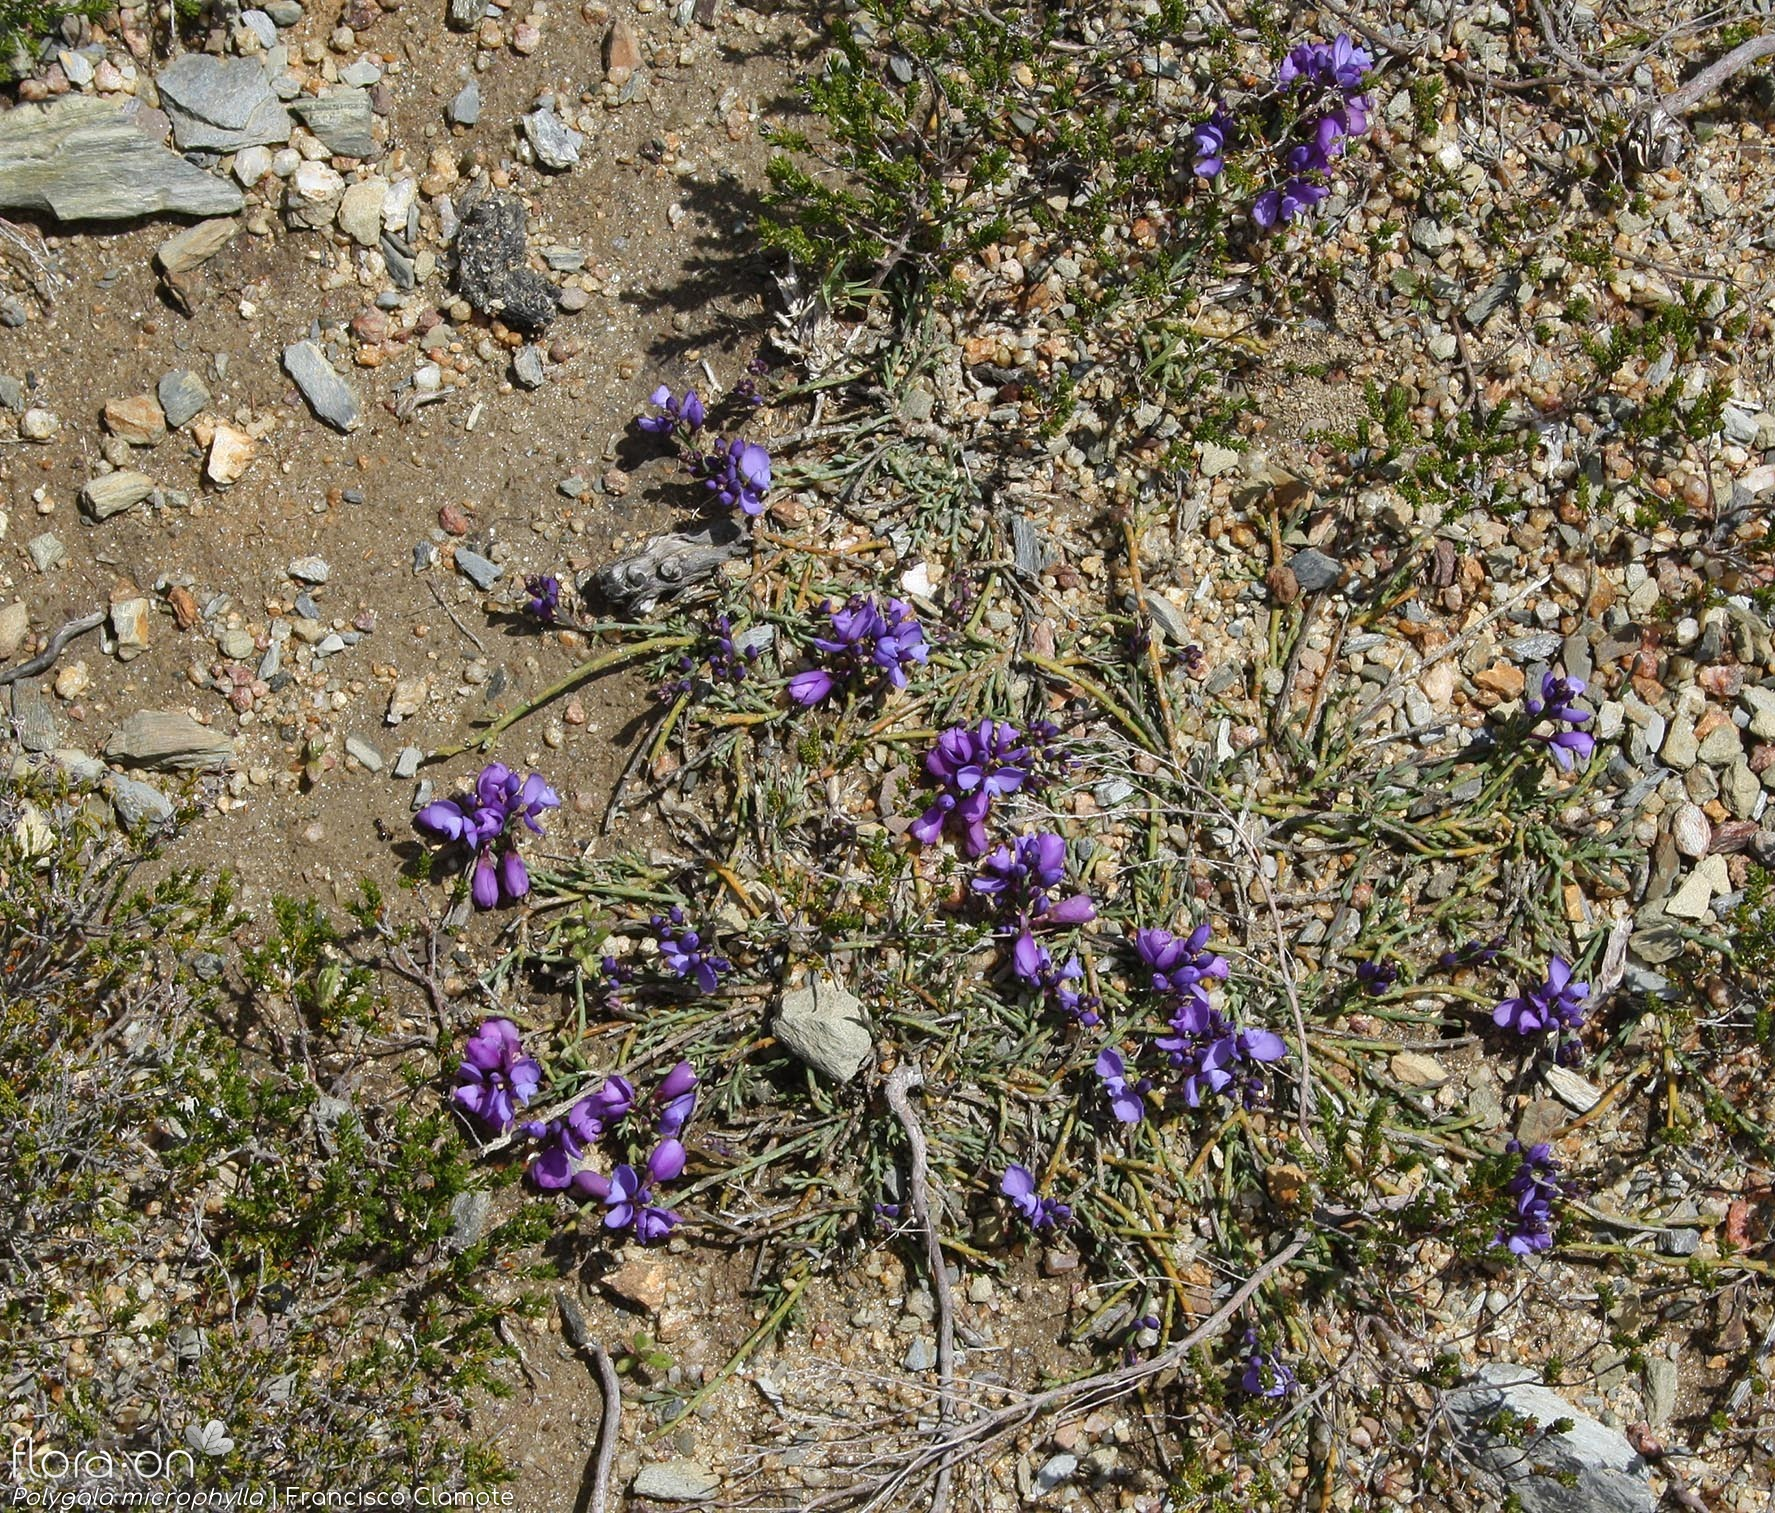 Polygala microphylla - Hábito | Francisco Clamote; CC BY-NC 4.0